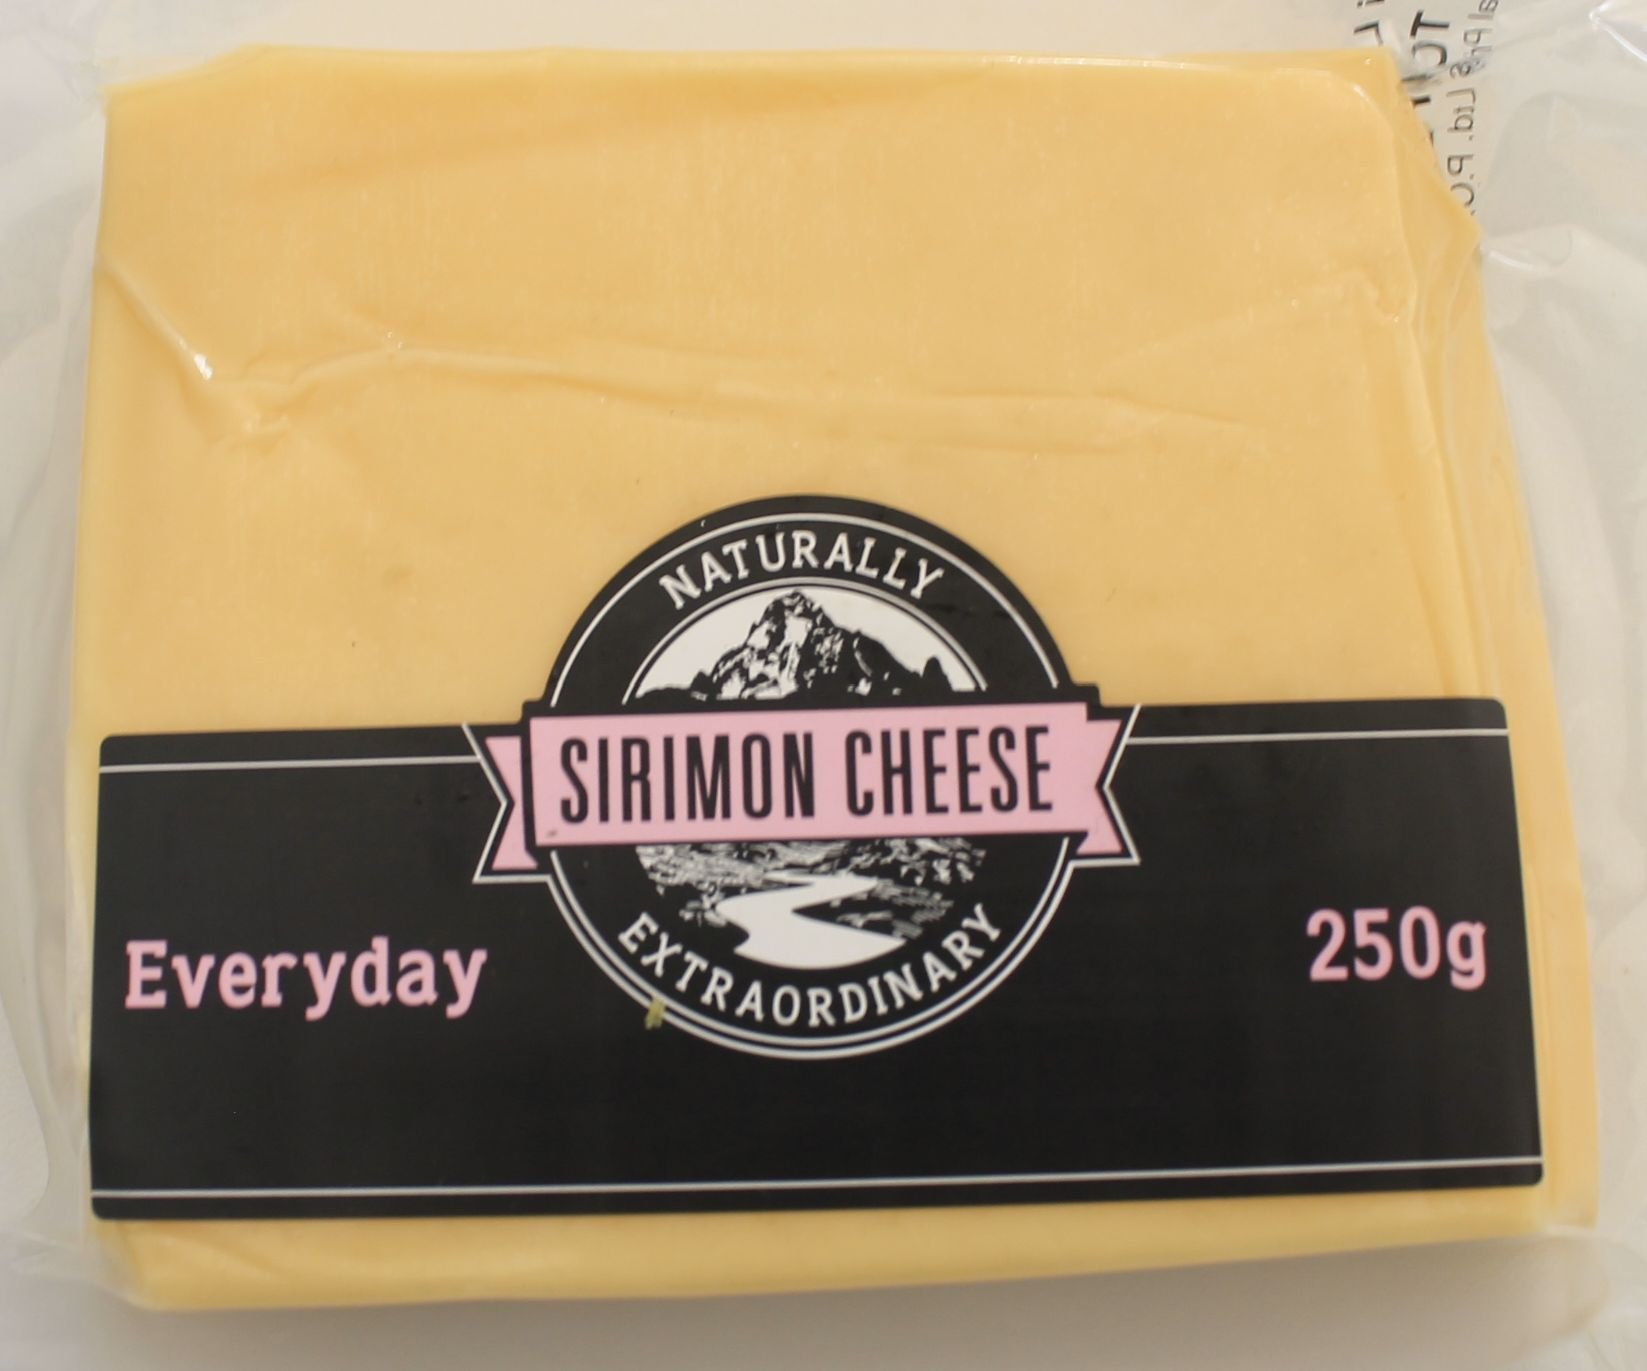 Sirimon Cheese Everyday 250gms